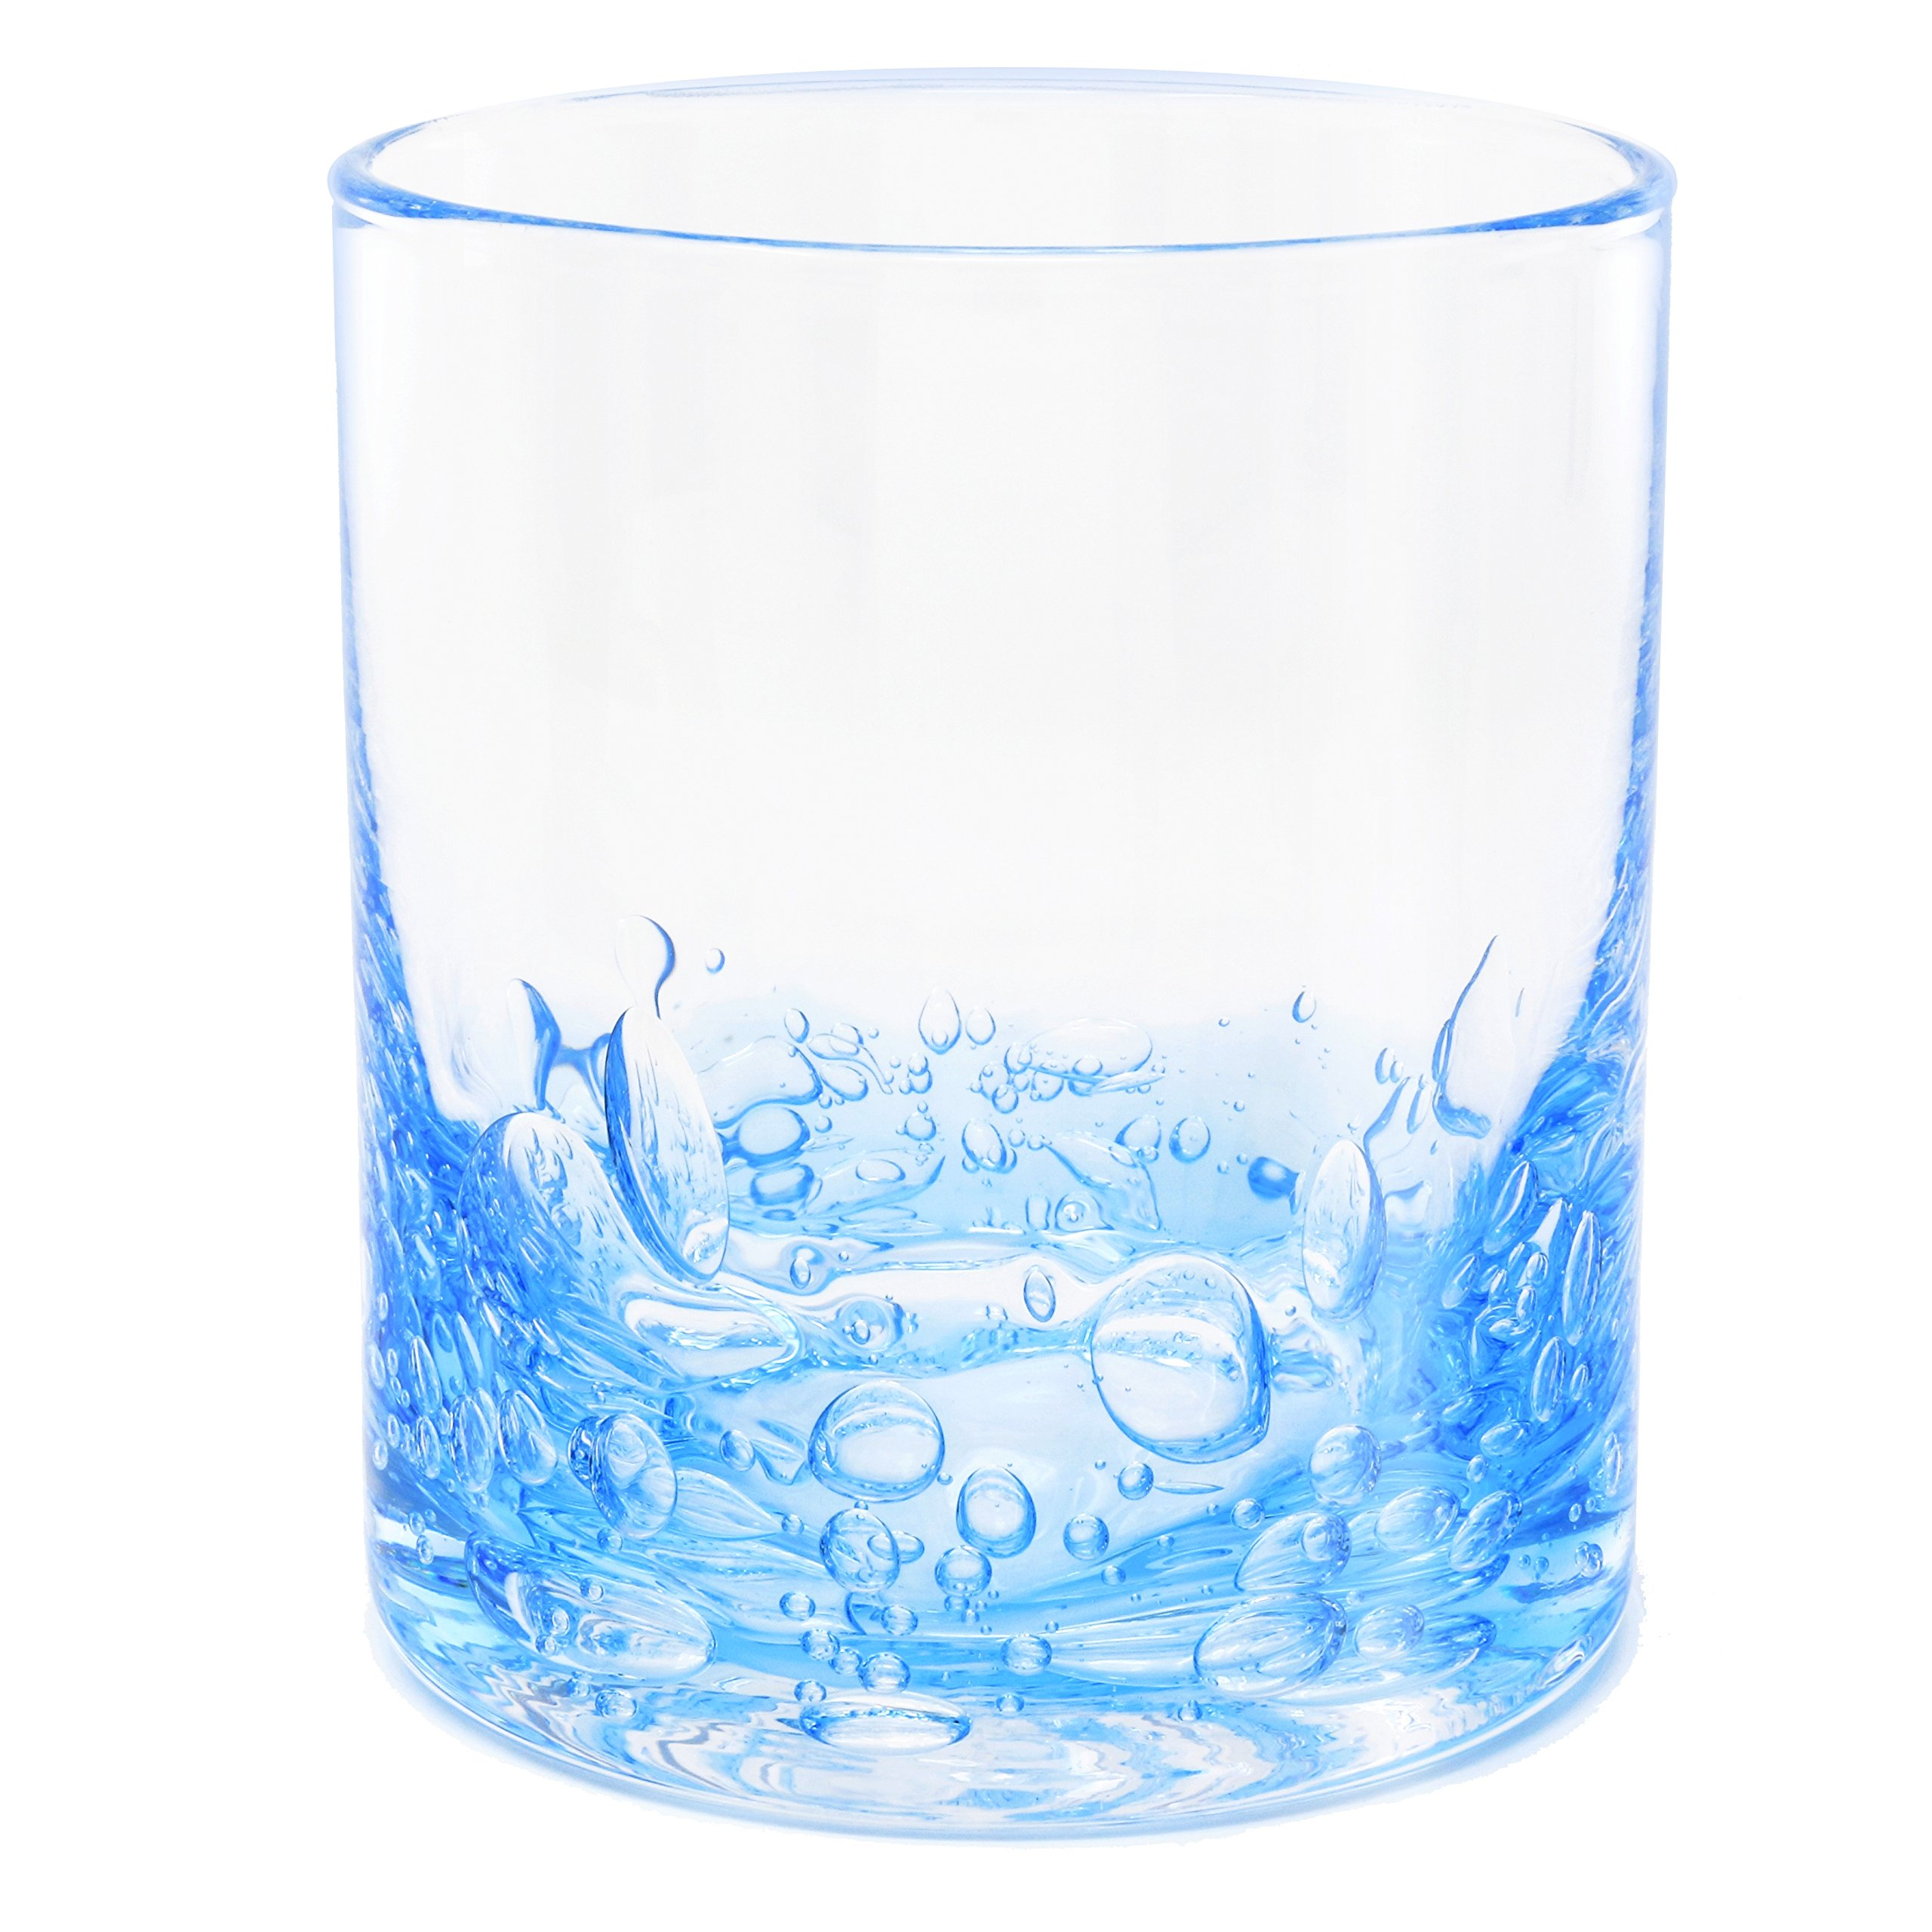 NÄU Zone Jovian Collection Cocktail Glasses Set of 4: Hand-Blown 12-oz Rocks Glasses – Great Tumbler for Scotch, Bourbon, Whiskey, or Any Mixed Drink – Elegant Glassware Set – [BLUE]